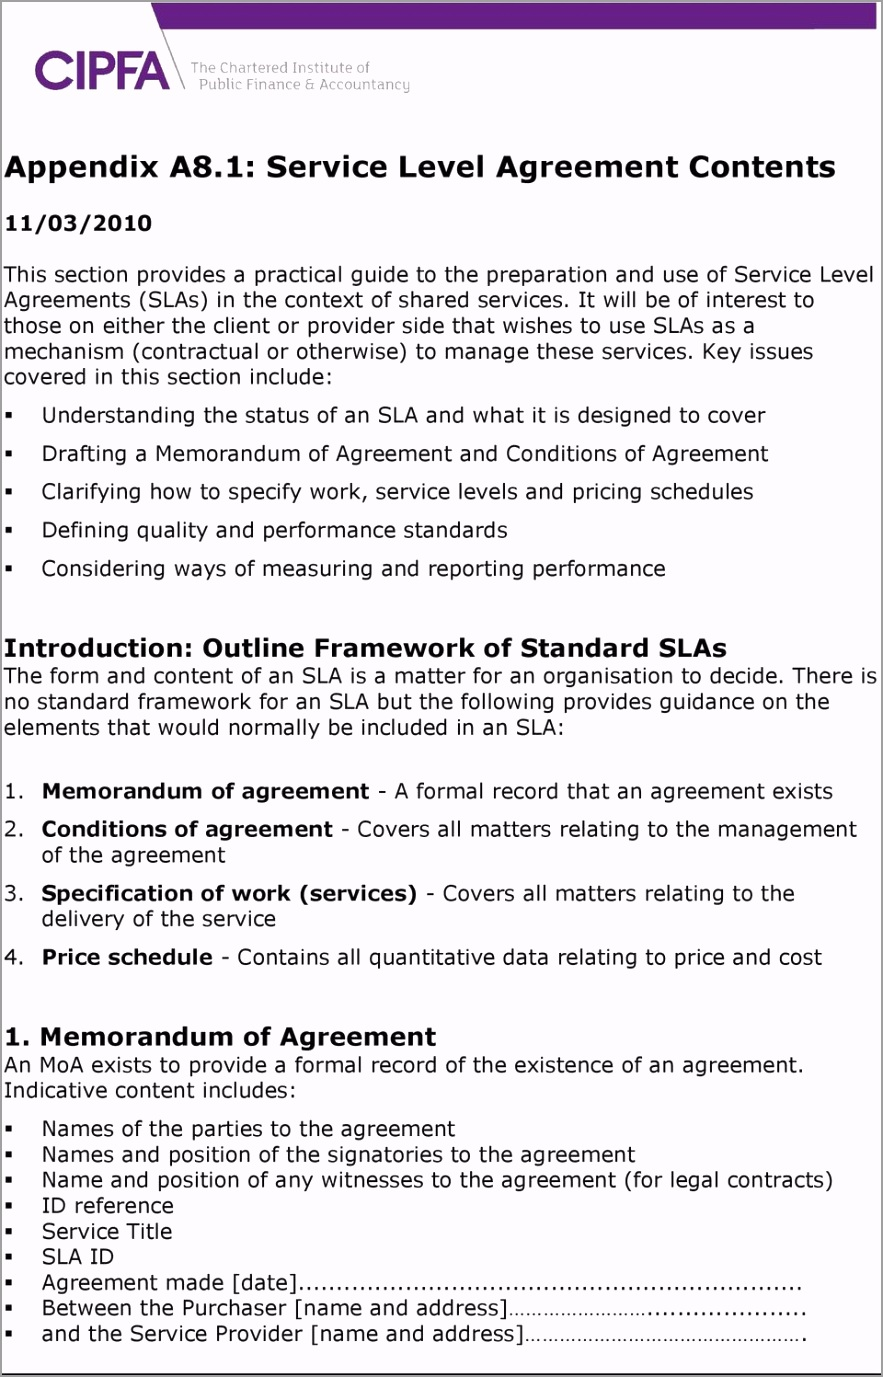 Appendix a8 1 service level agreement contents iiaow